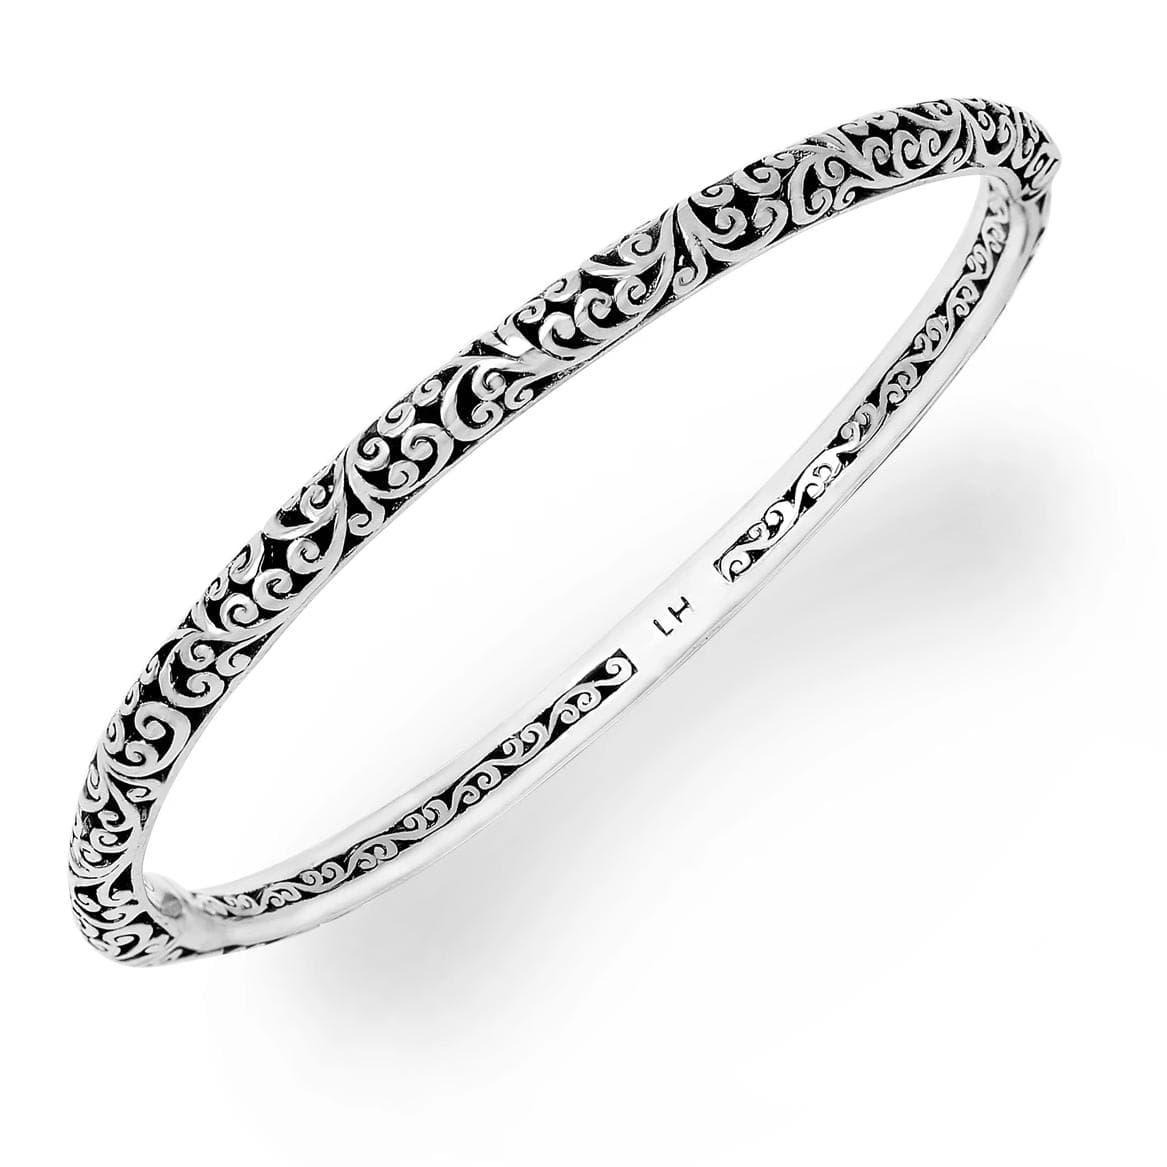 Sterling Silver Classic Bangle - BU6685-00138-Lois Hill-Renee Taylor Gallery